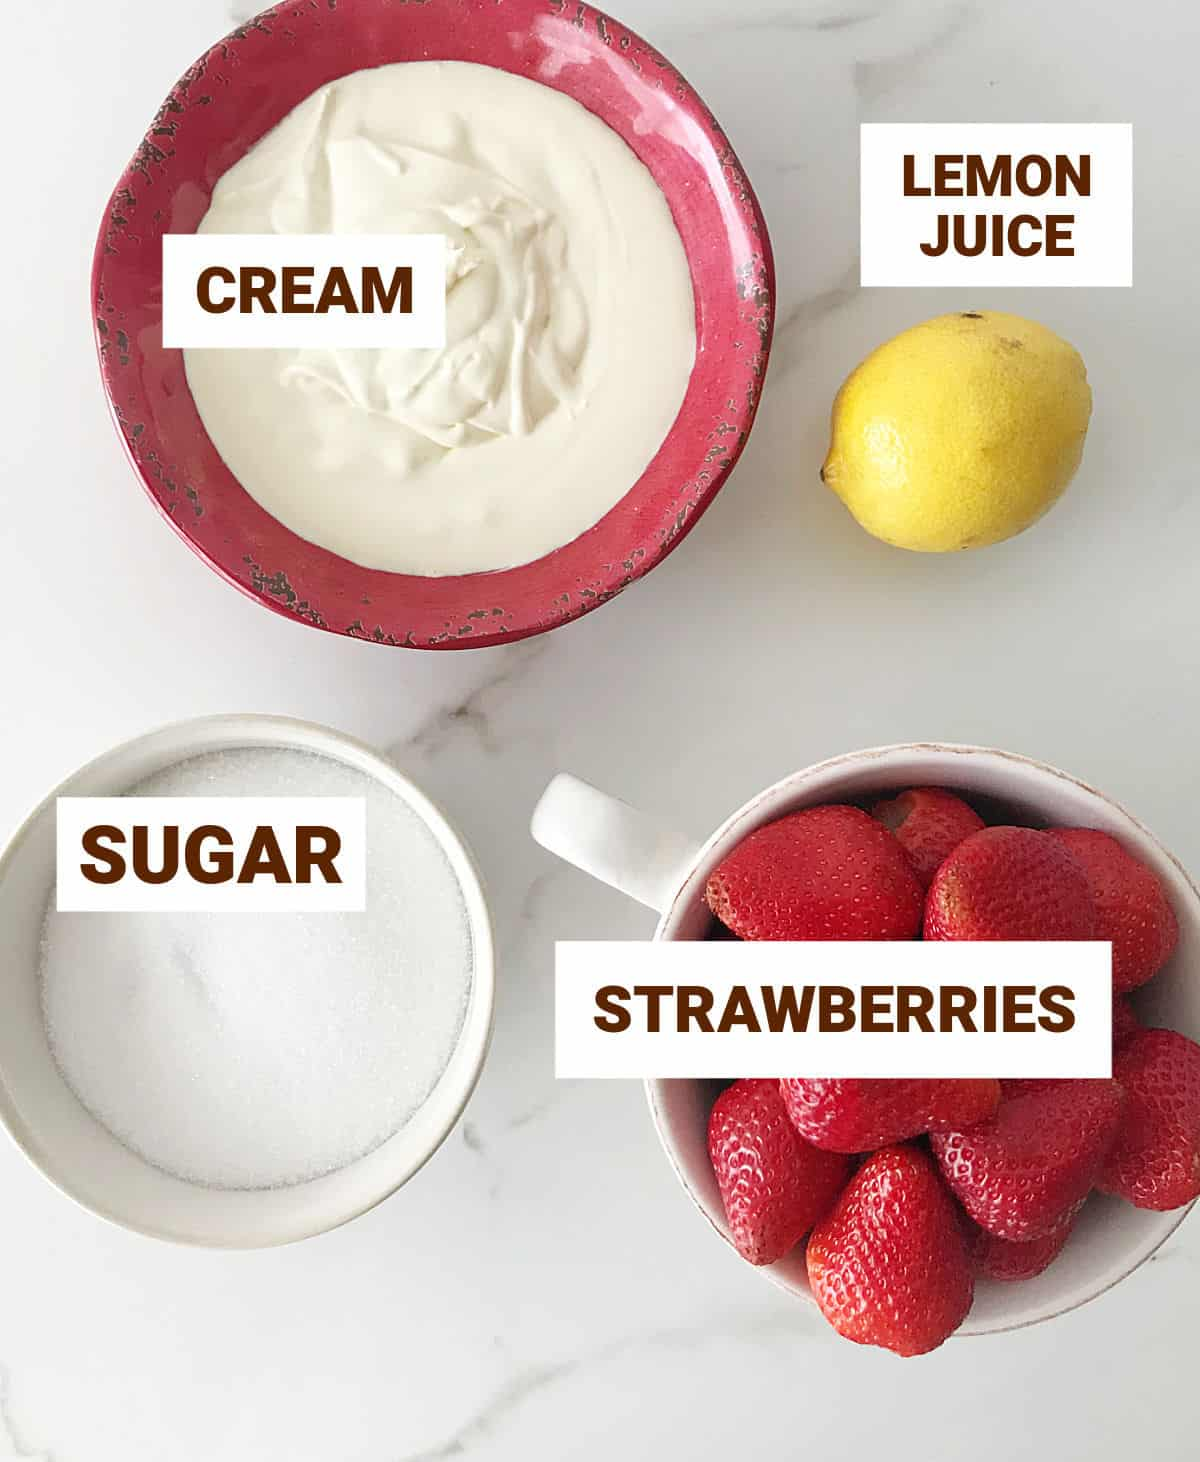 Ingredients for fresh strawberry ice cream on white surface, including lemon, cream, and sugar